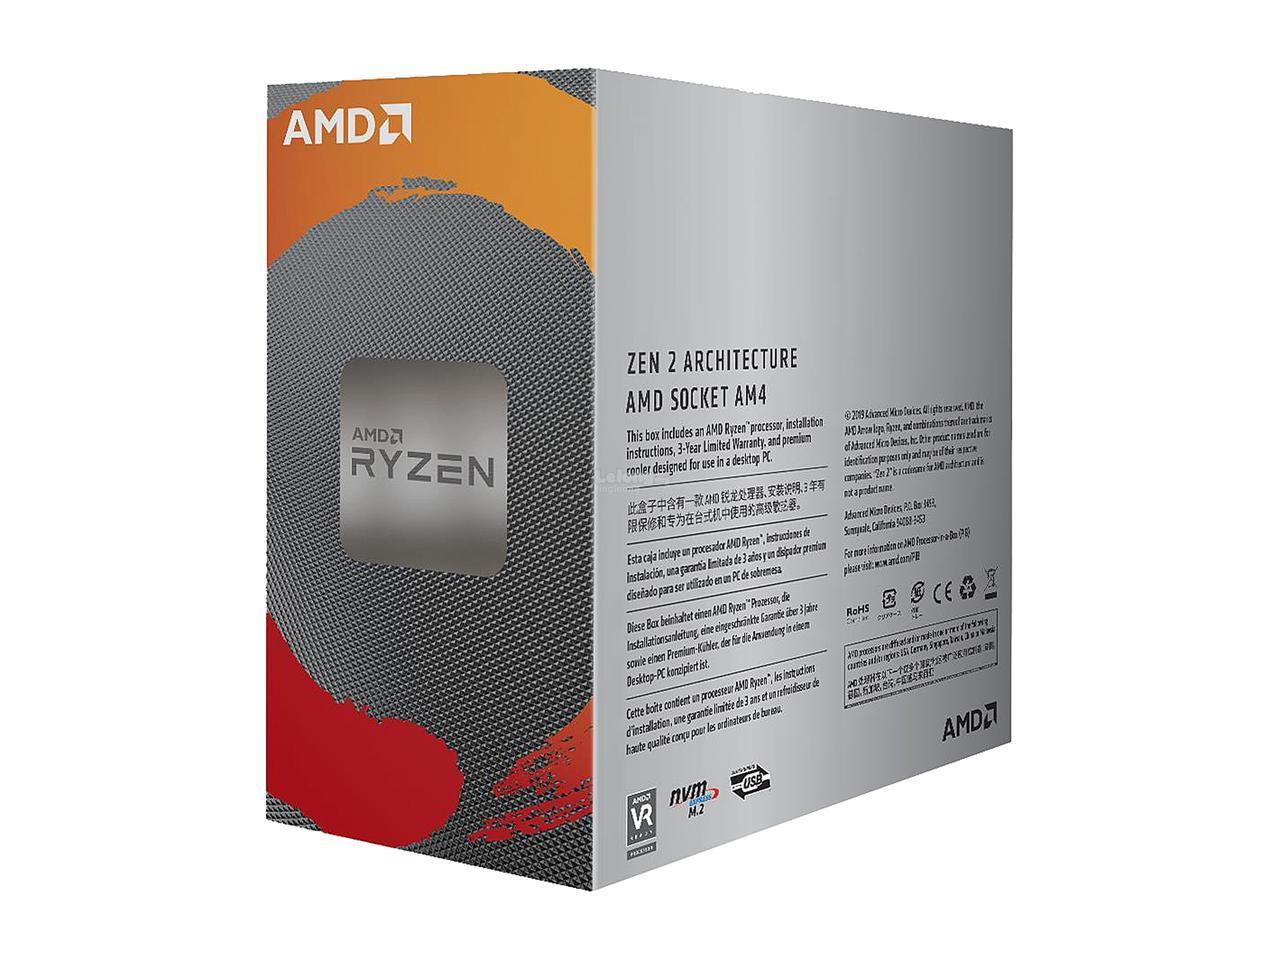 # AMD Ryzen 5 3600 Processor # FREE SHIPPING NATIONWIDE